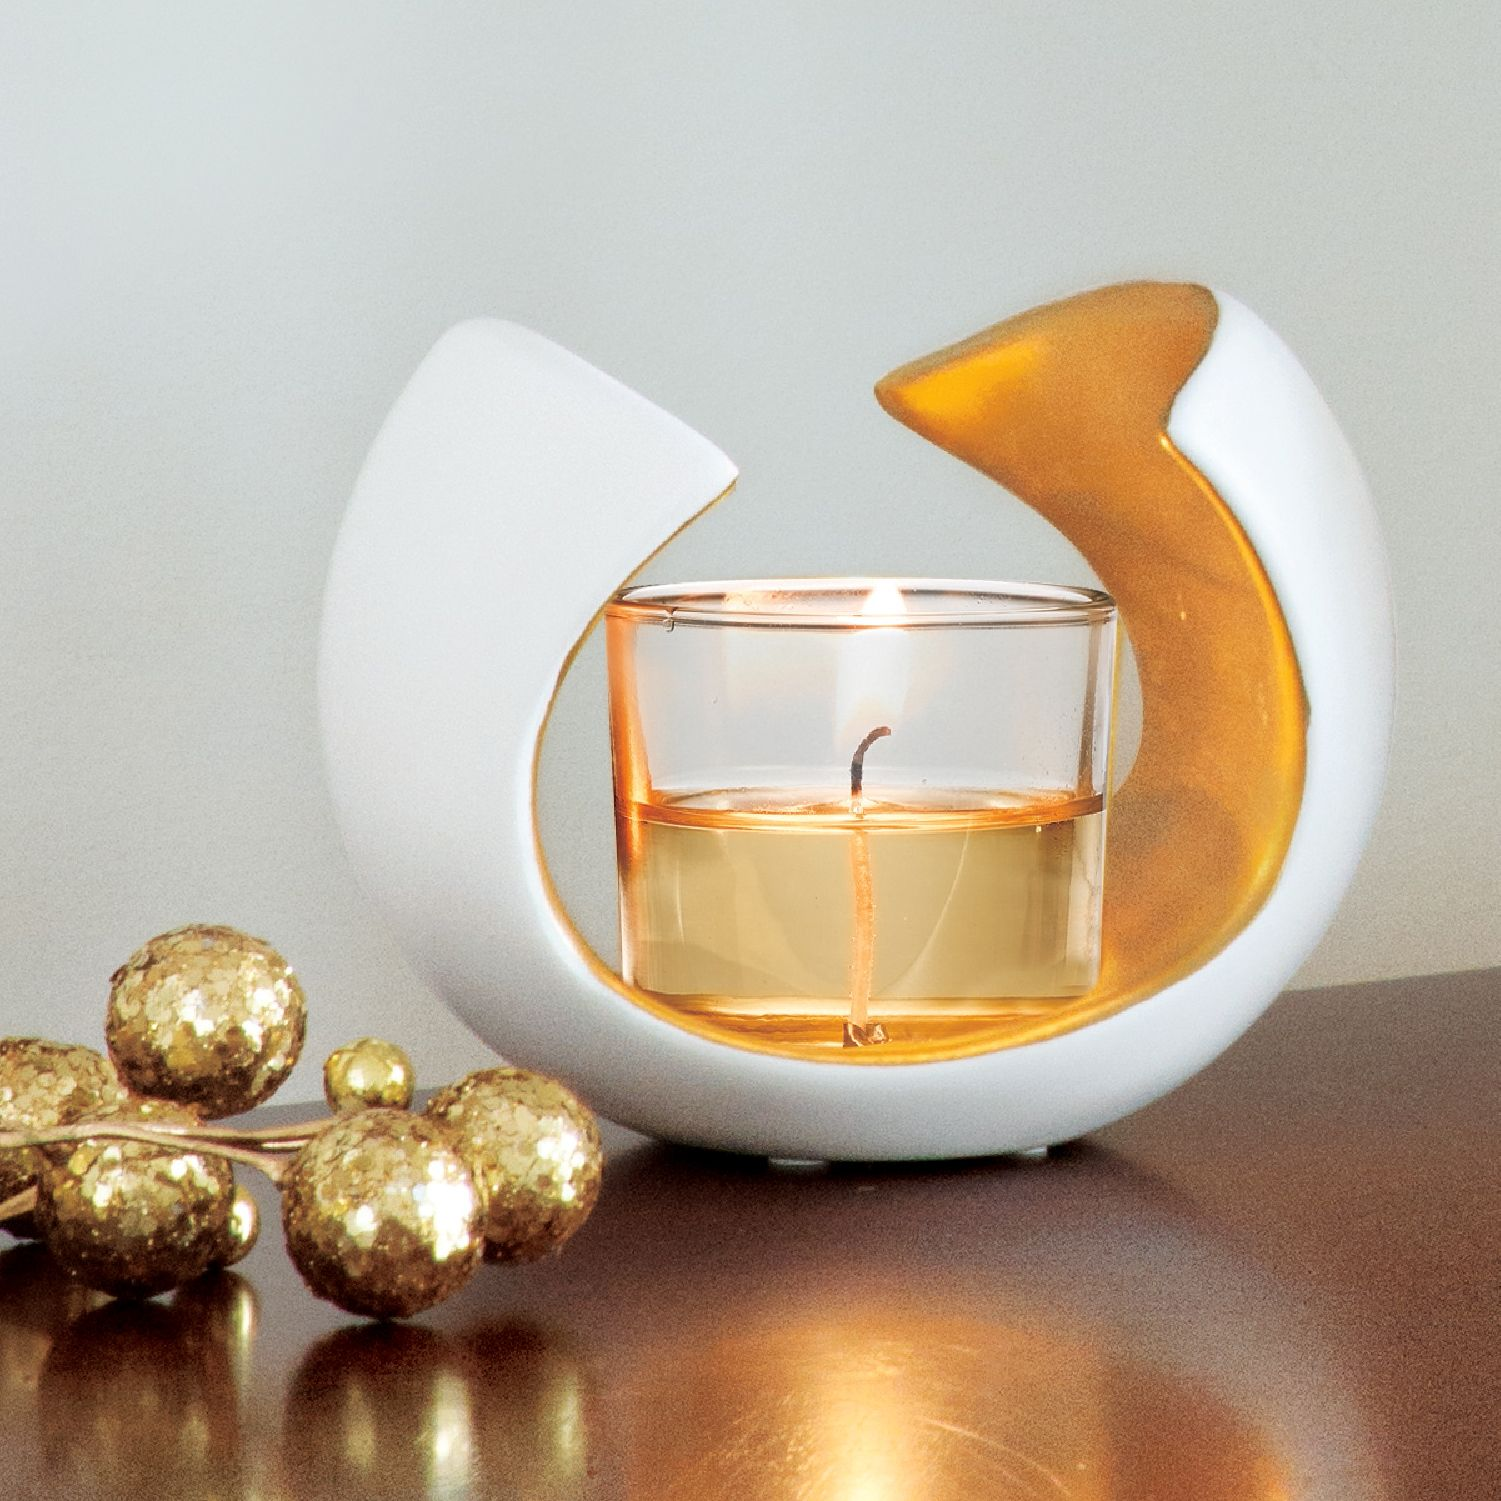 The new embrace votive holder features on the september specials http